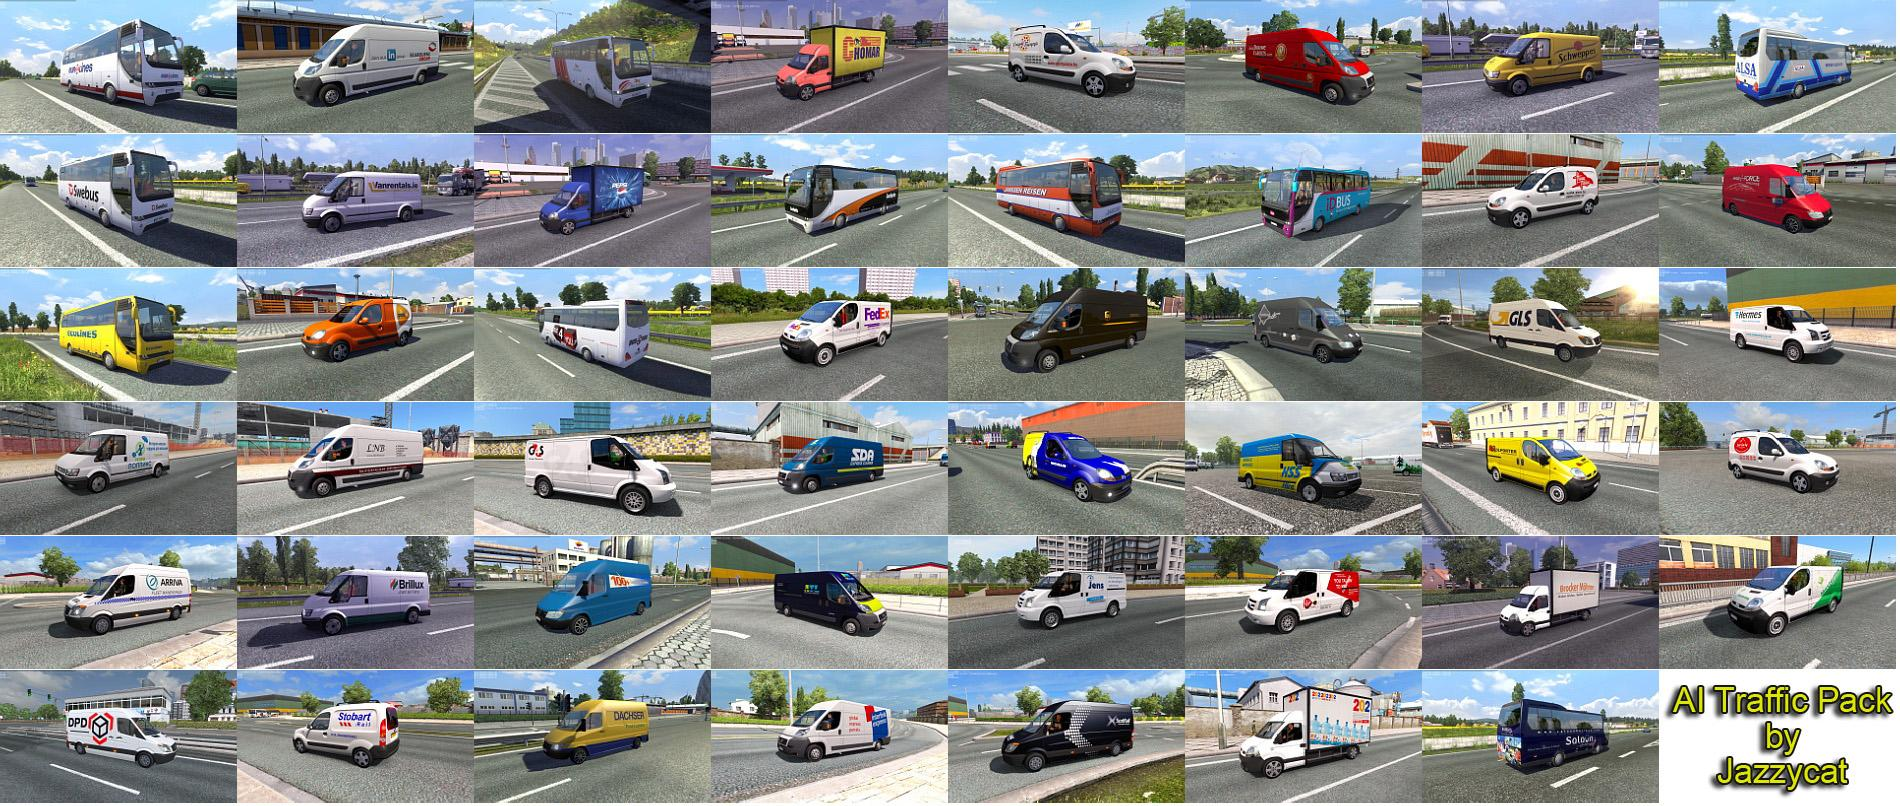 AI TRAFFIC PACK BY JAZZYCAT V3 5 For ETS2 -Euro Truck